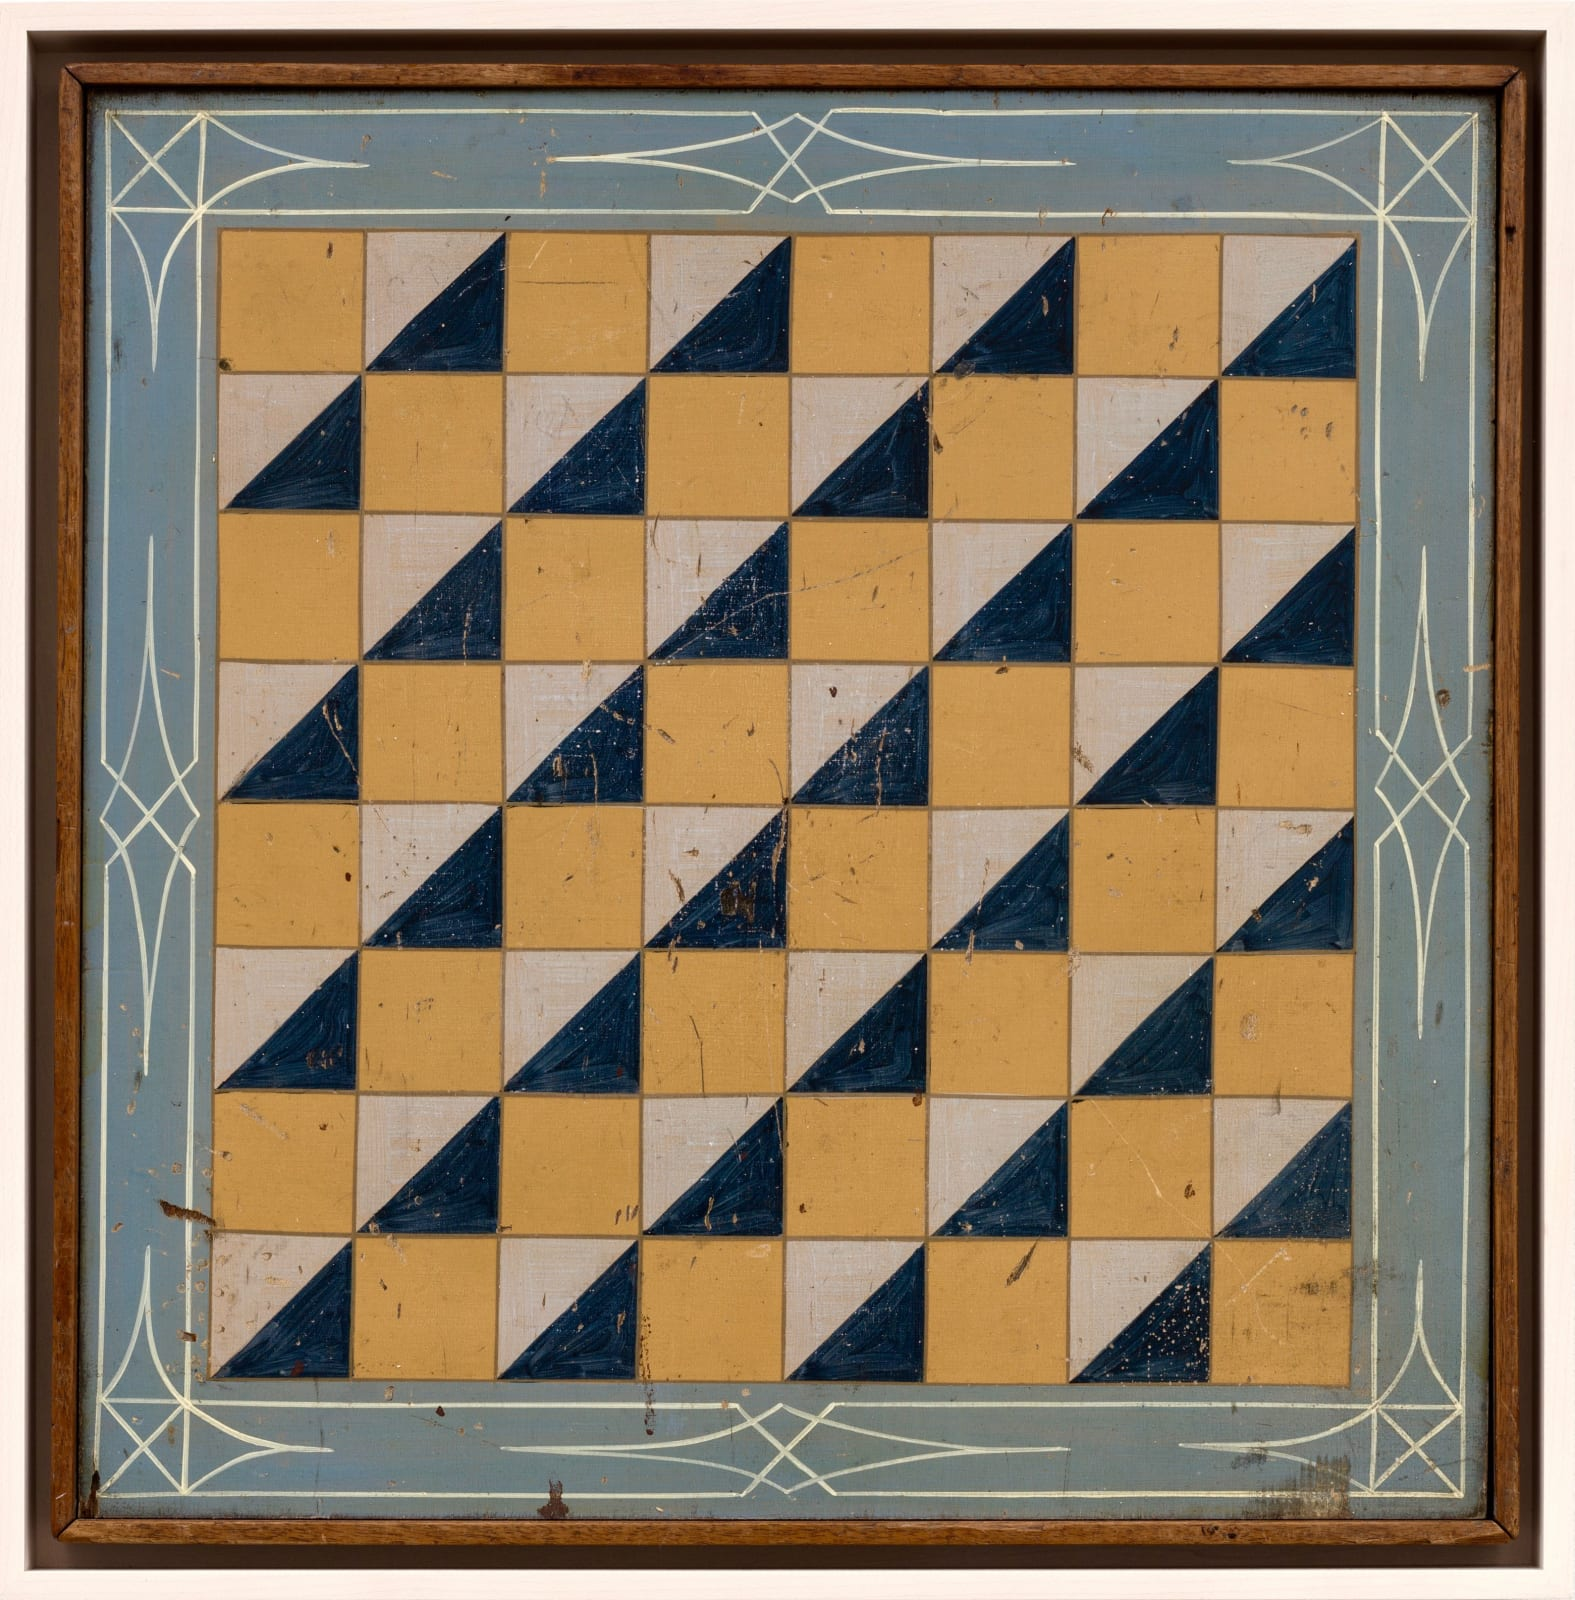 5-COLOR CHECKERS GAME BOARD WITH BLUE AND GREY BORDER, LATE 19TH CENTURY Enamel on wood 18 x 18 in 45.7 x 45.7 cm (AU 252)